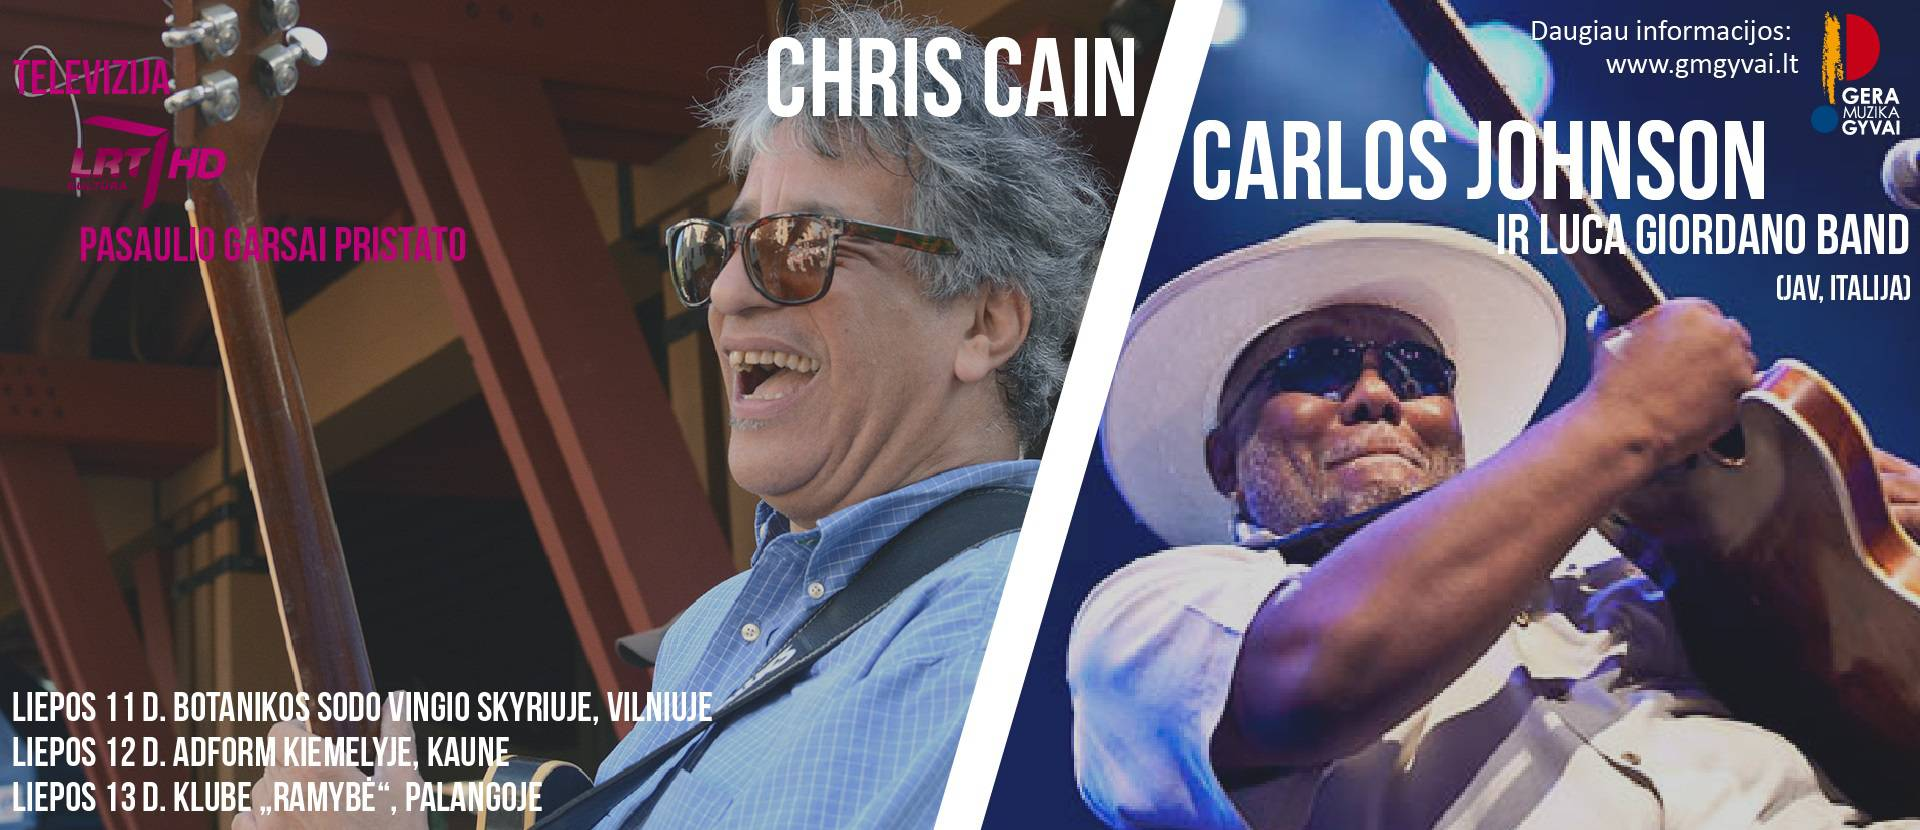 "Carlos Johnson vs Chris Cain ir ""Luca Giordano band"" (JAV, Italija)"